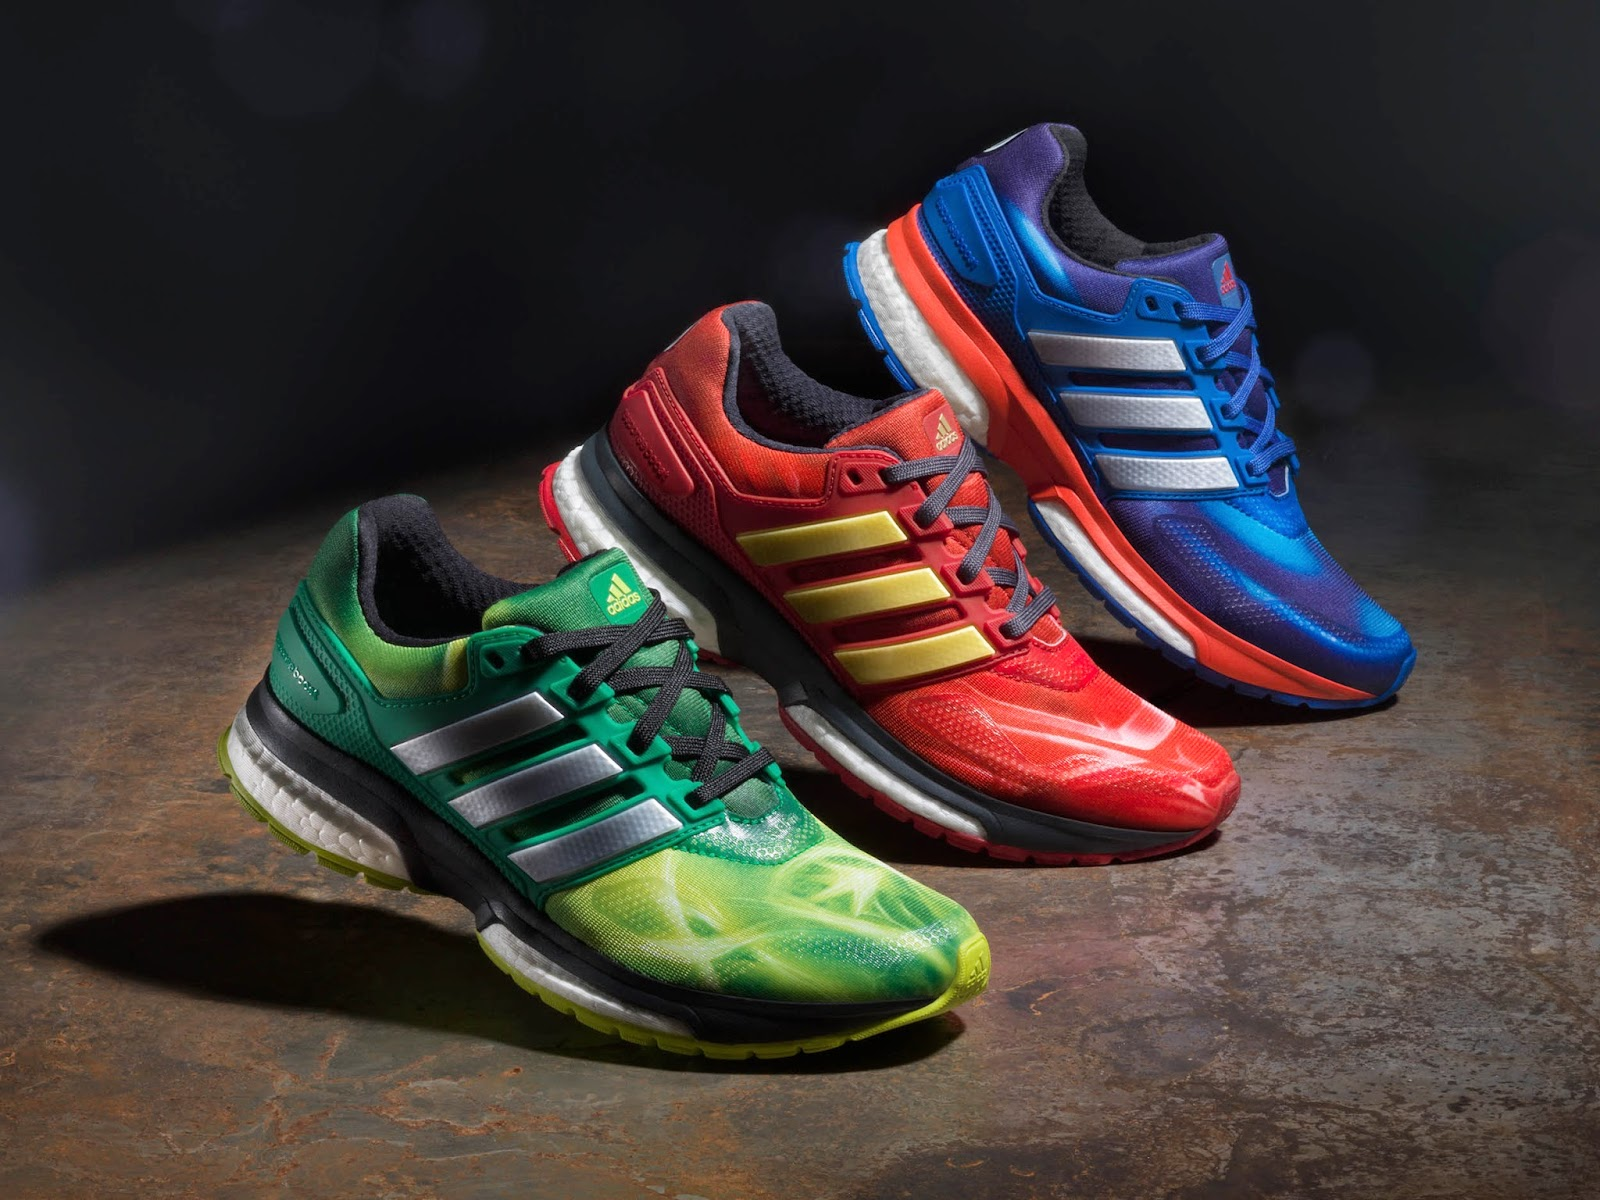 newest collection 15376 3f863 The adidas x Marvel's Avengers Collection - Recycle Bin of a ...